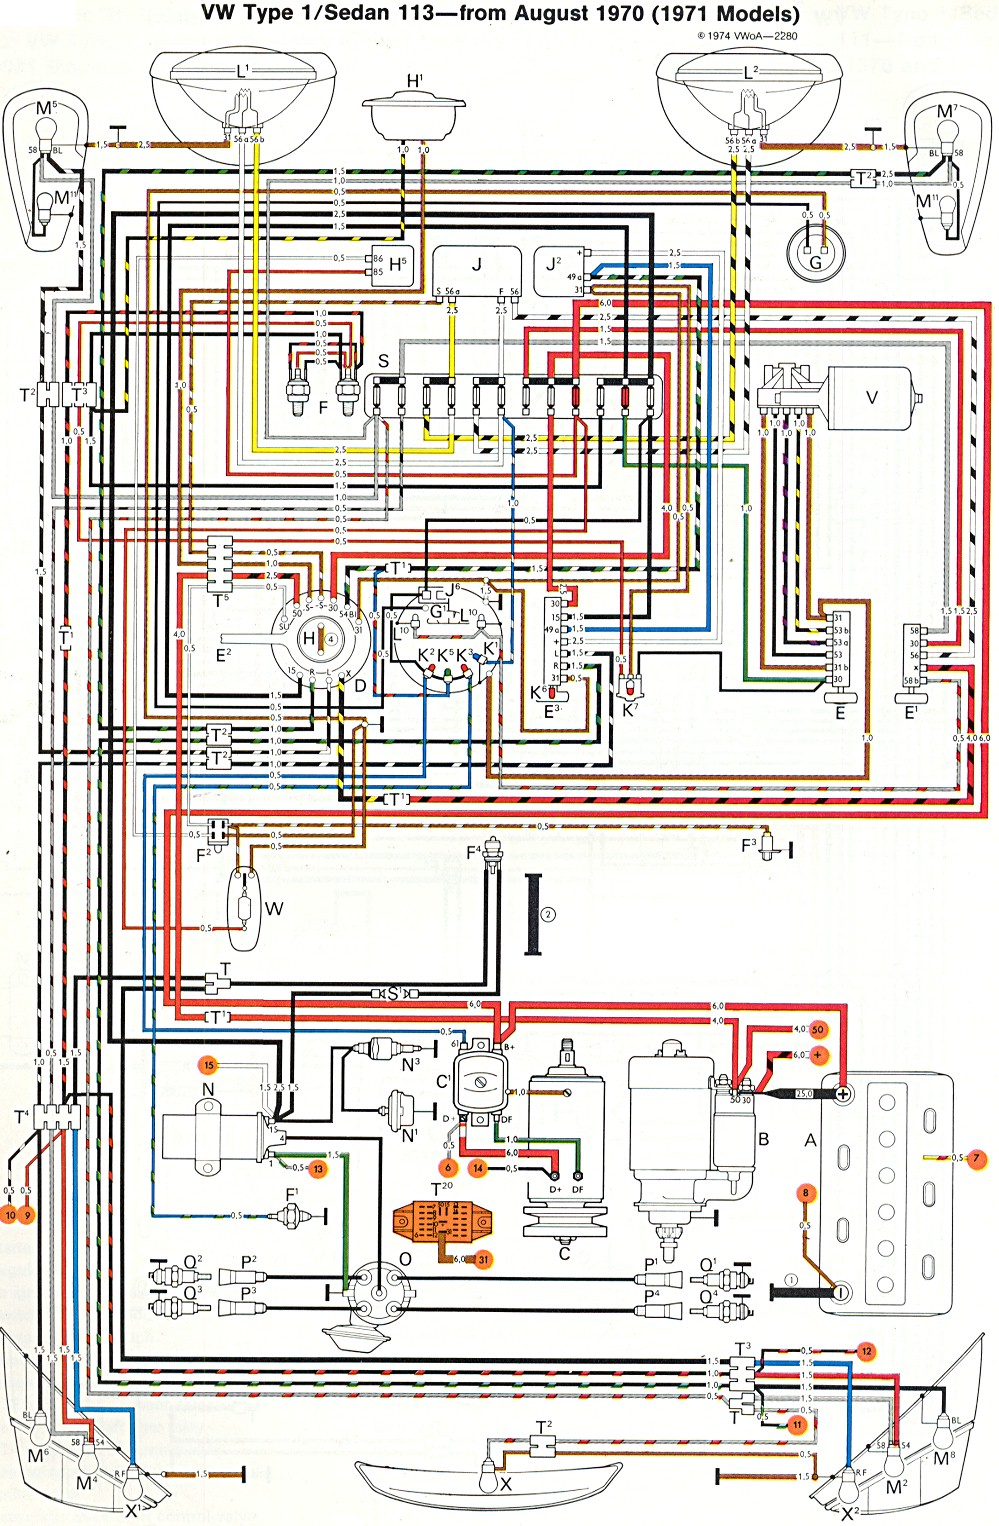 bug_super_71 2002 vw beetle wiring diagram altenator wiring diagram 2002 vw Wiring Harness Diagram at creativeand.co